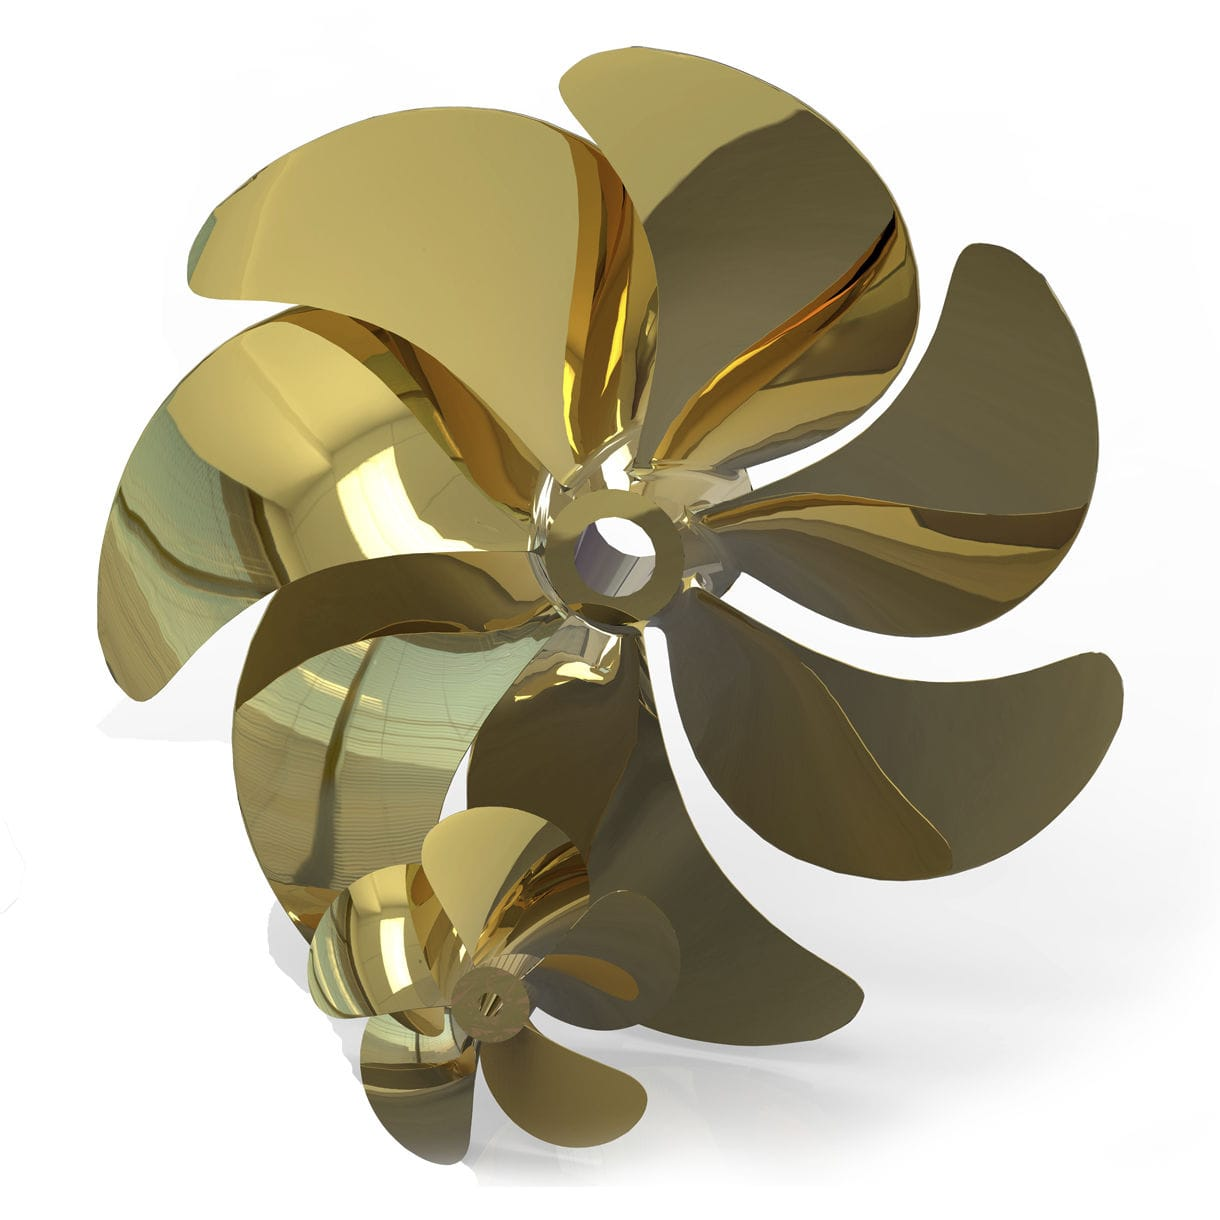 Yacht propeller / for ships / fixed-pitch / shaft drive - Poseidon